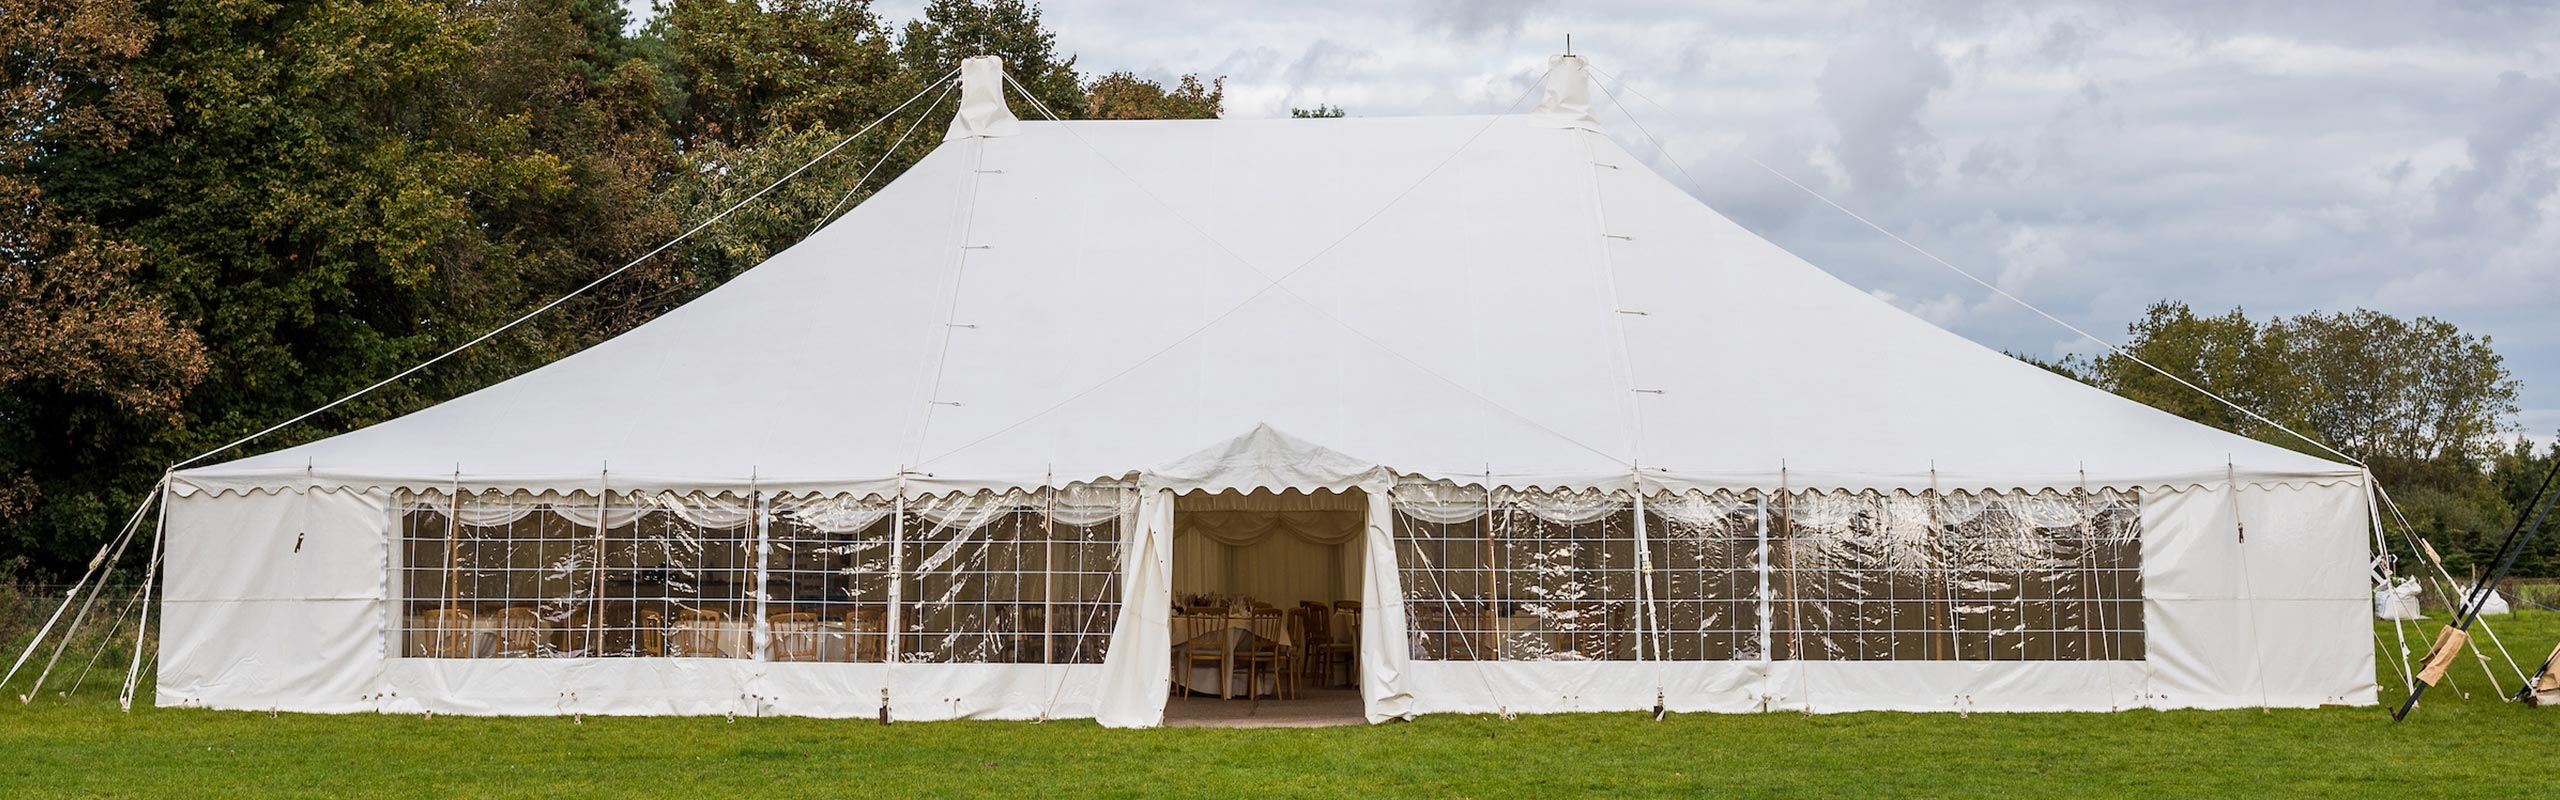 Marquee Hire Essex Prices